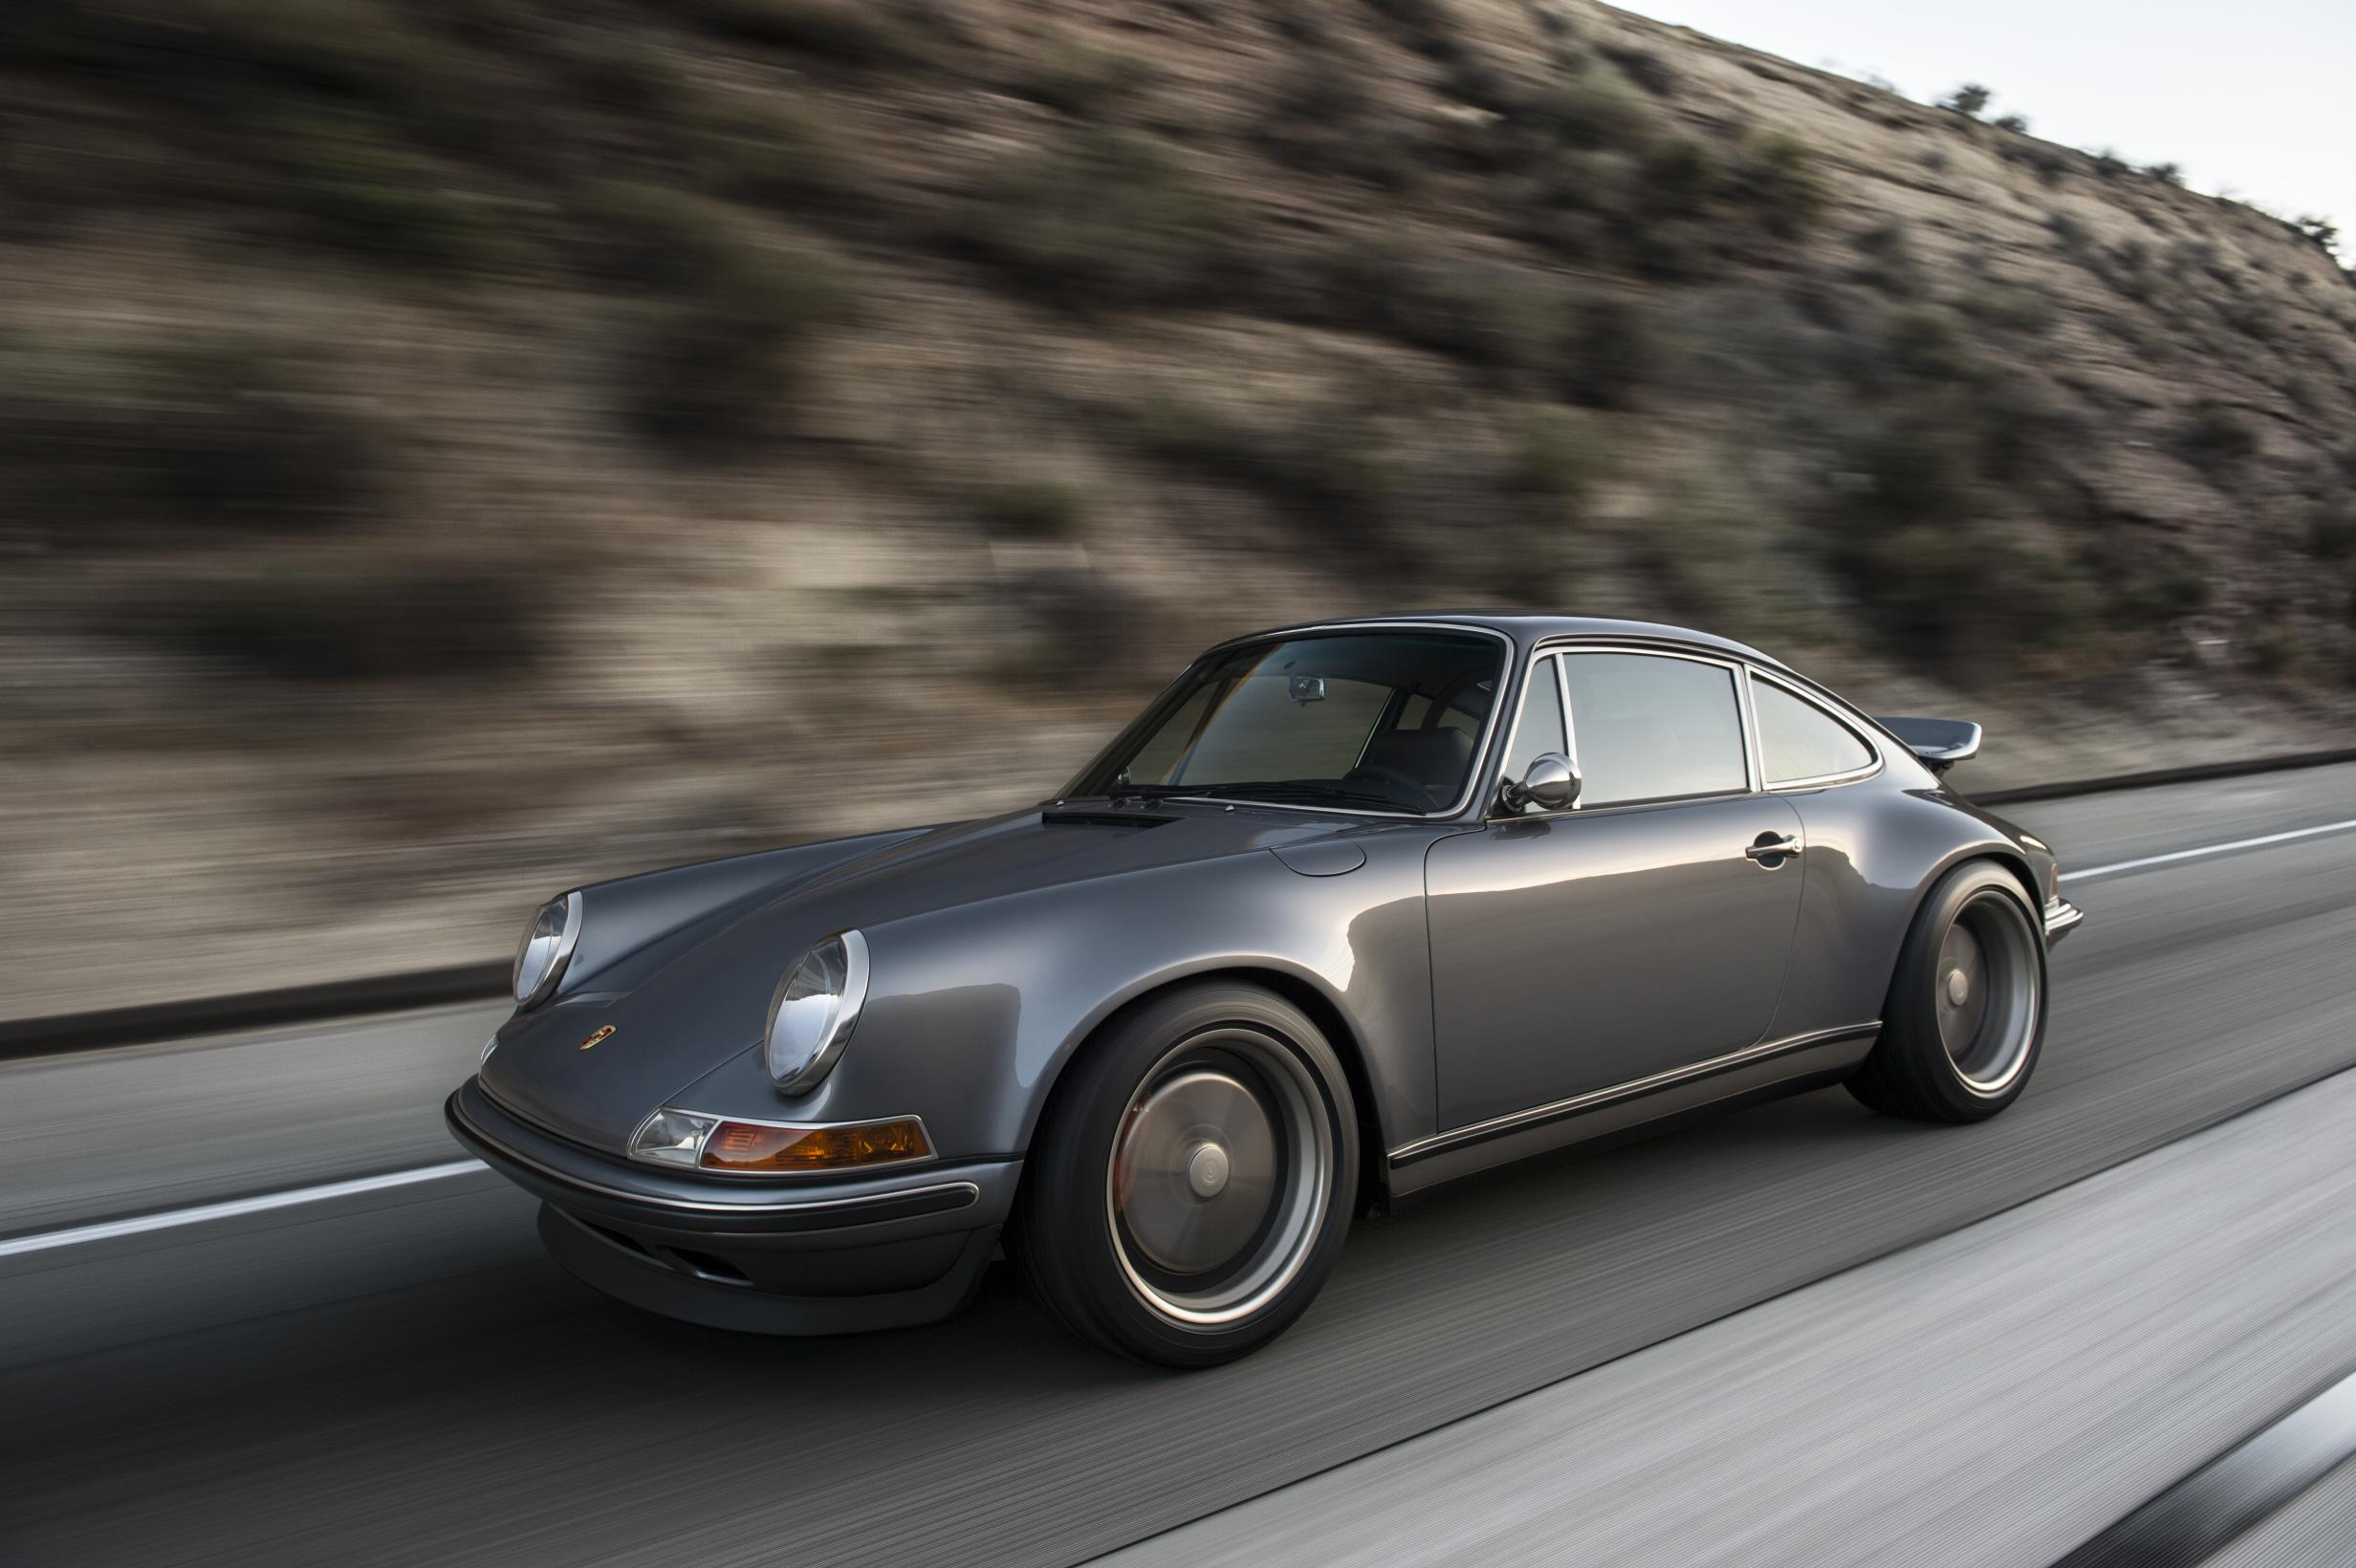 Singer trots out its latest reimagined Porsche 911s for Pebble